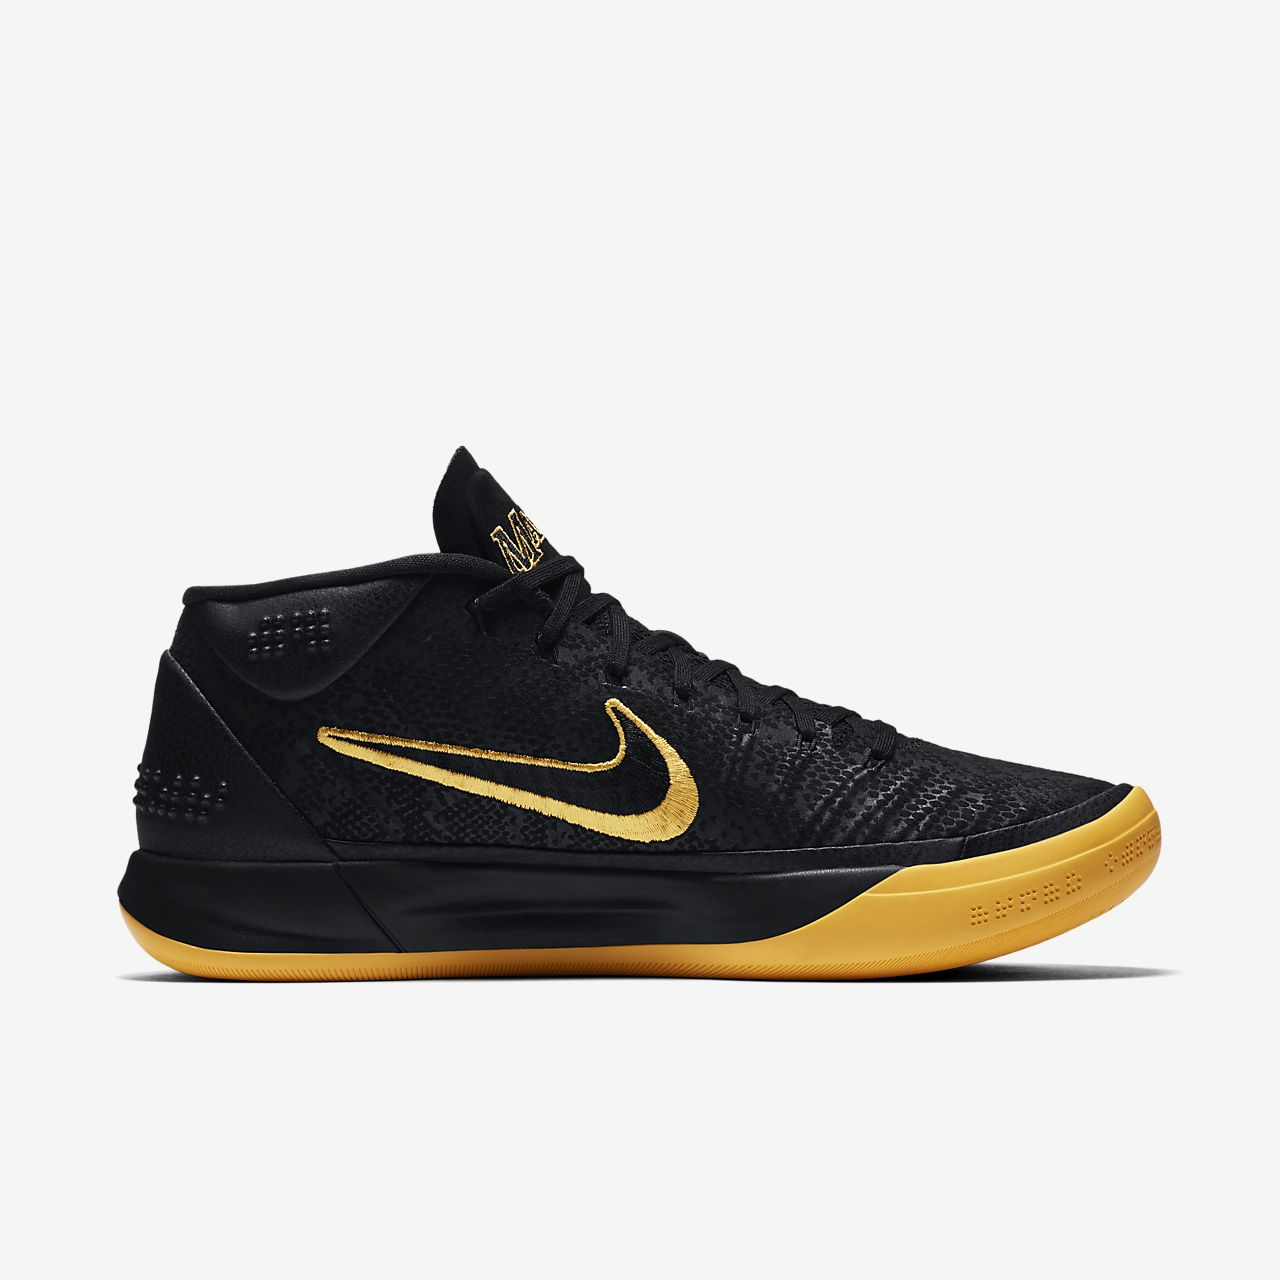 Nike Kobe Black Mamba Men's Basketball FI